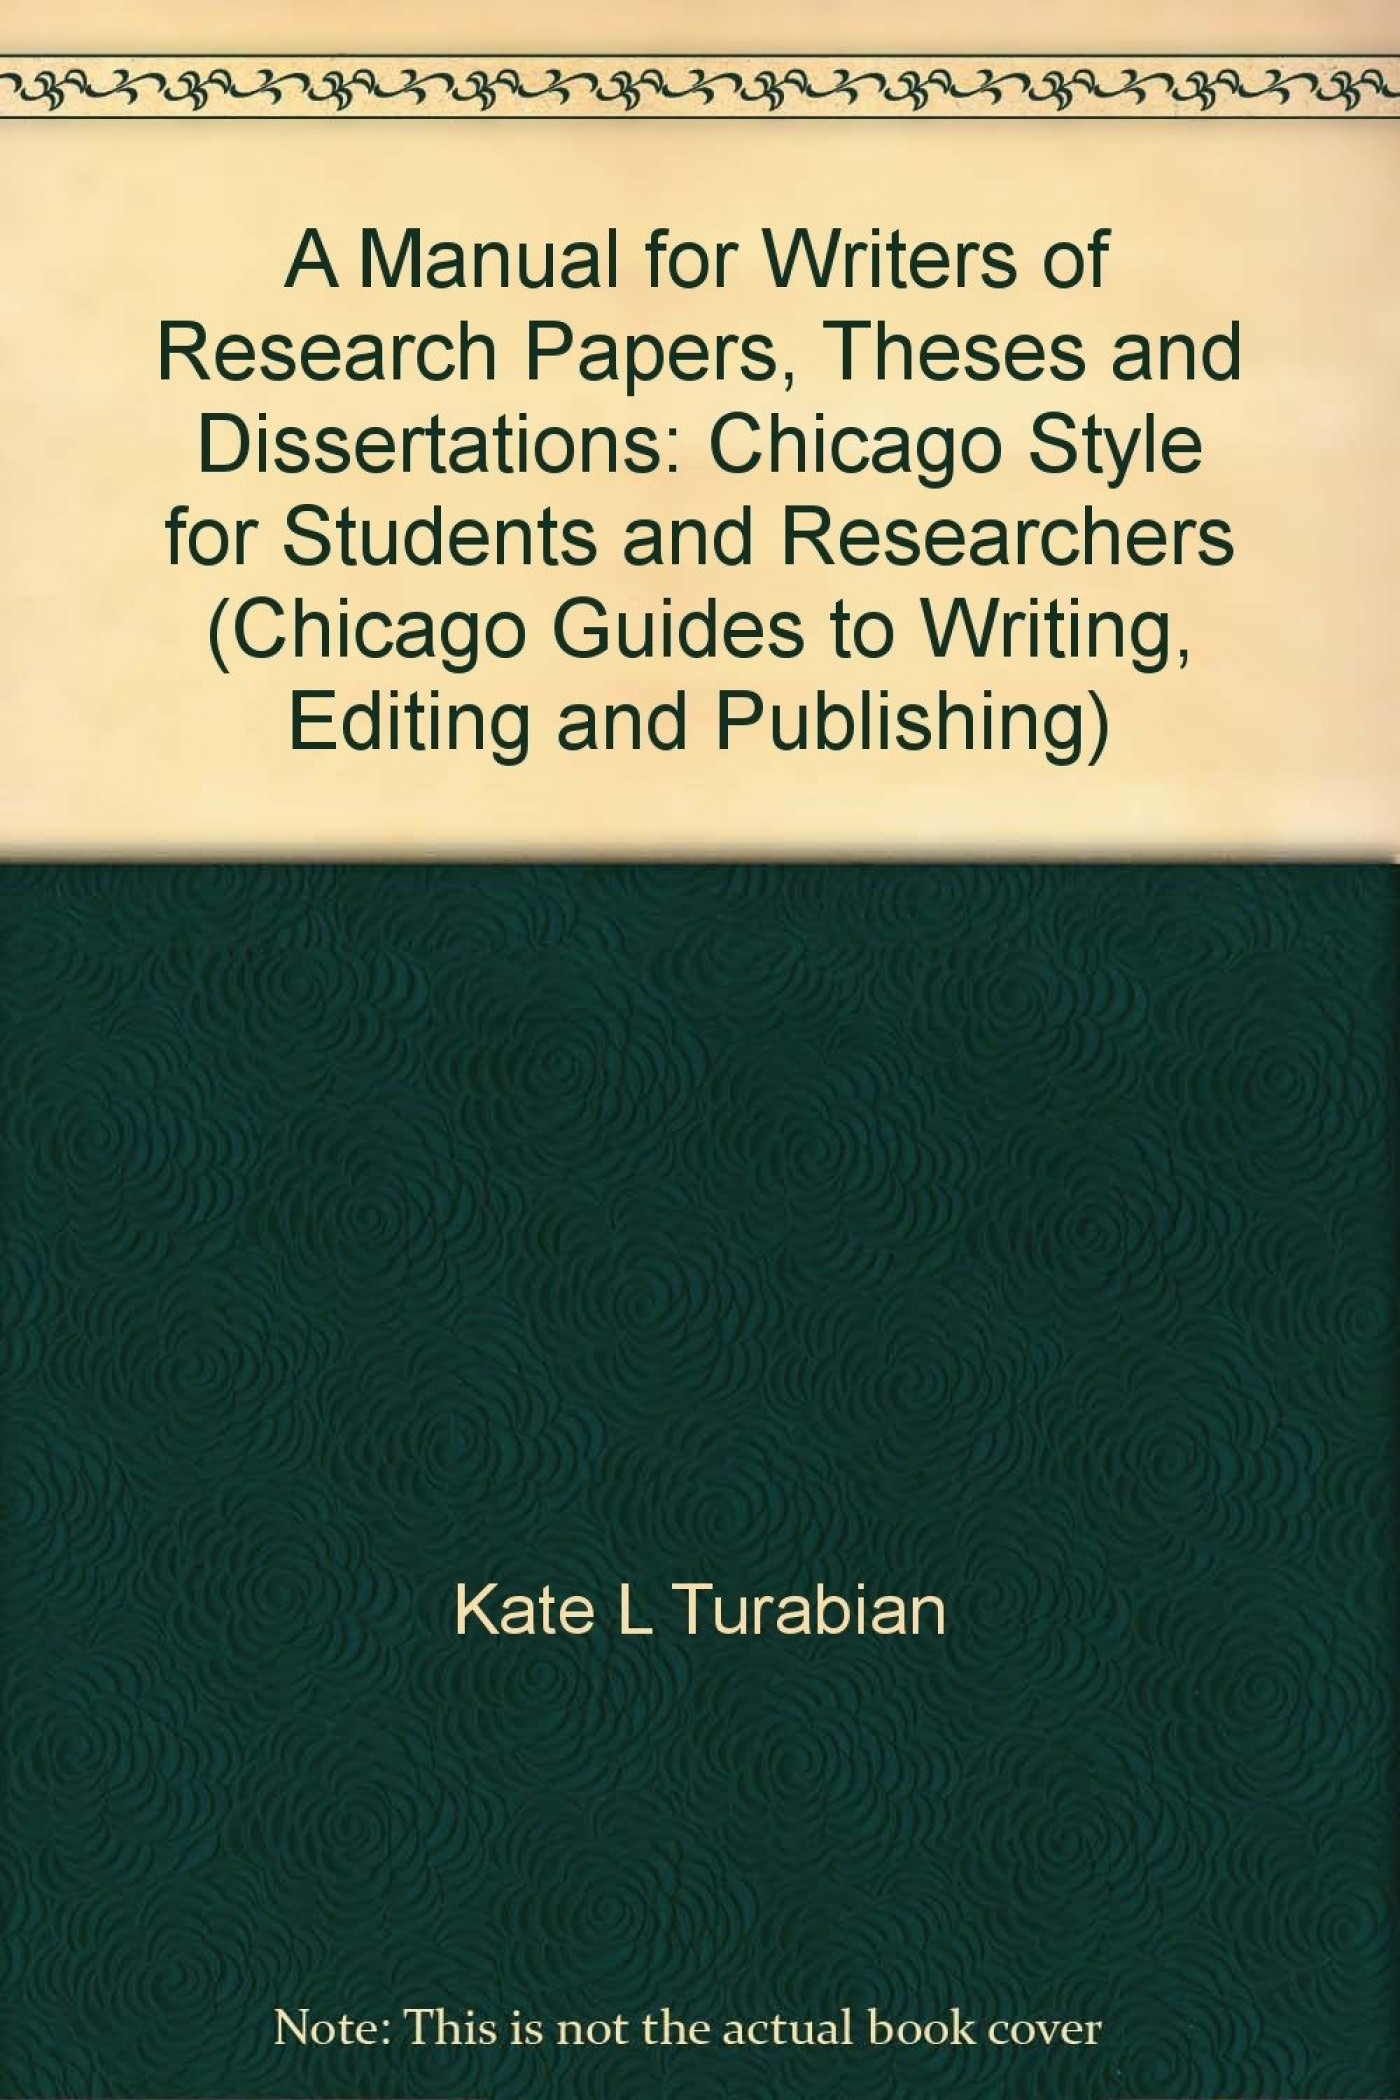 Chicago turabian citation dissertation